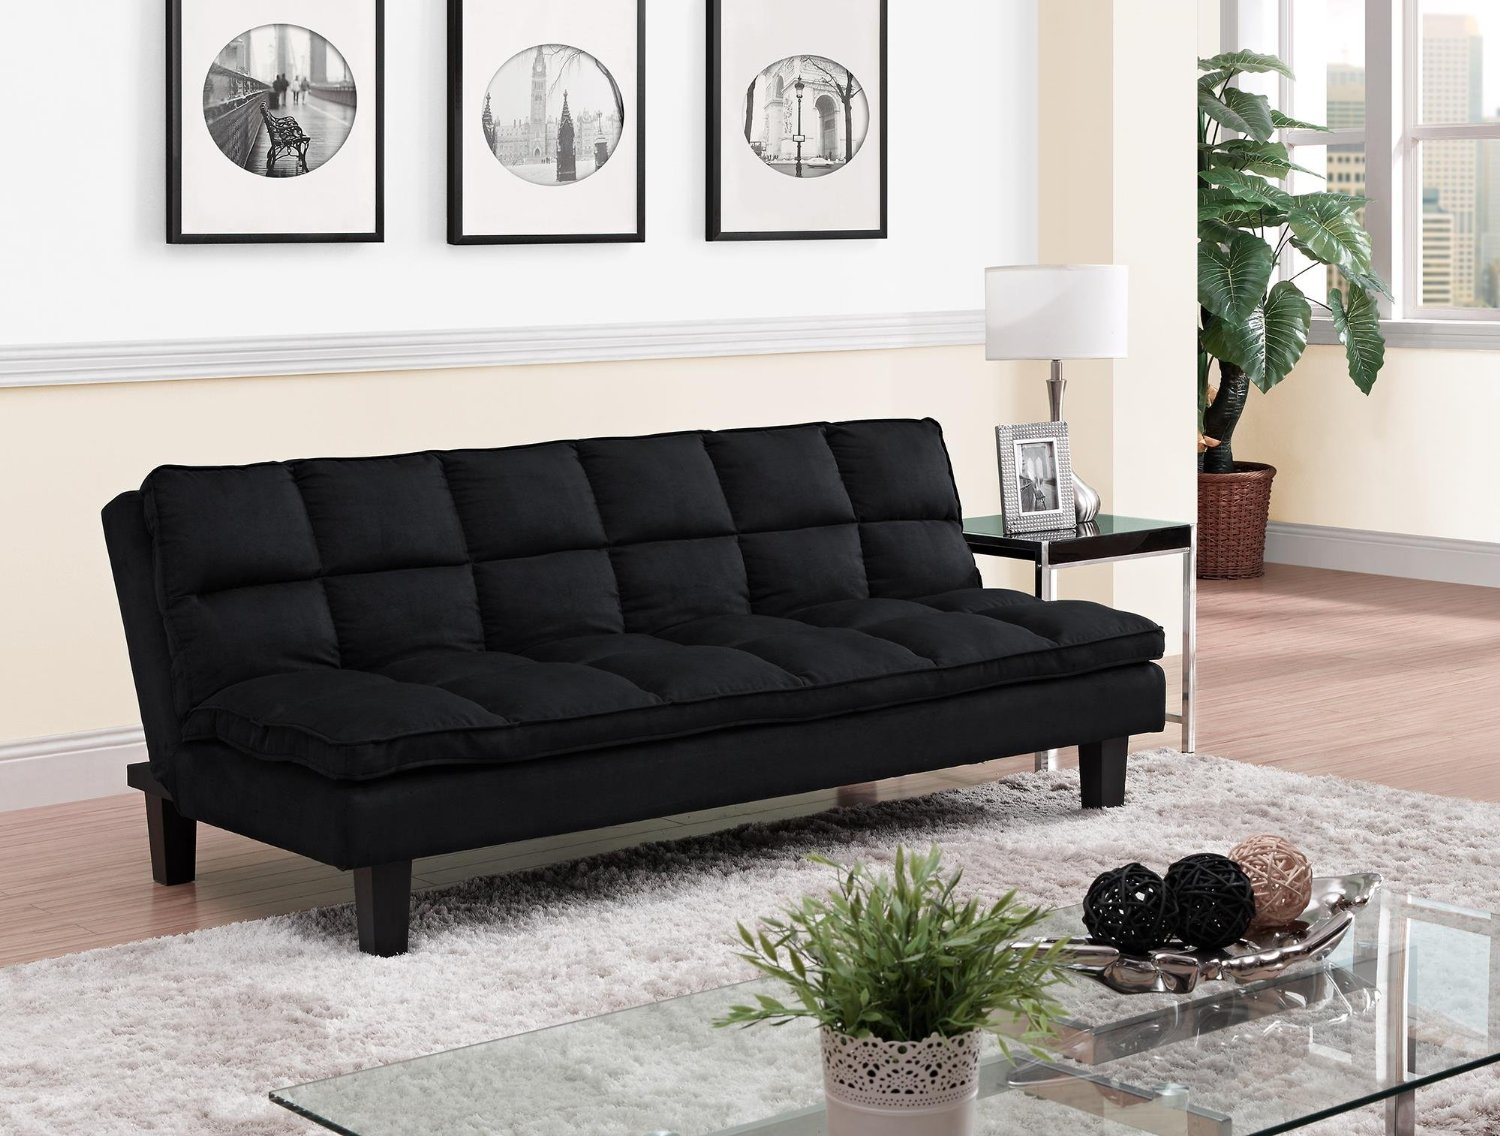 Balkarp Sofa Bed | Sofa Bed Ikea Usa | Ikea Sofa Beds